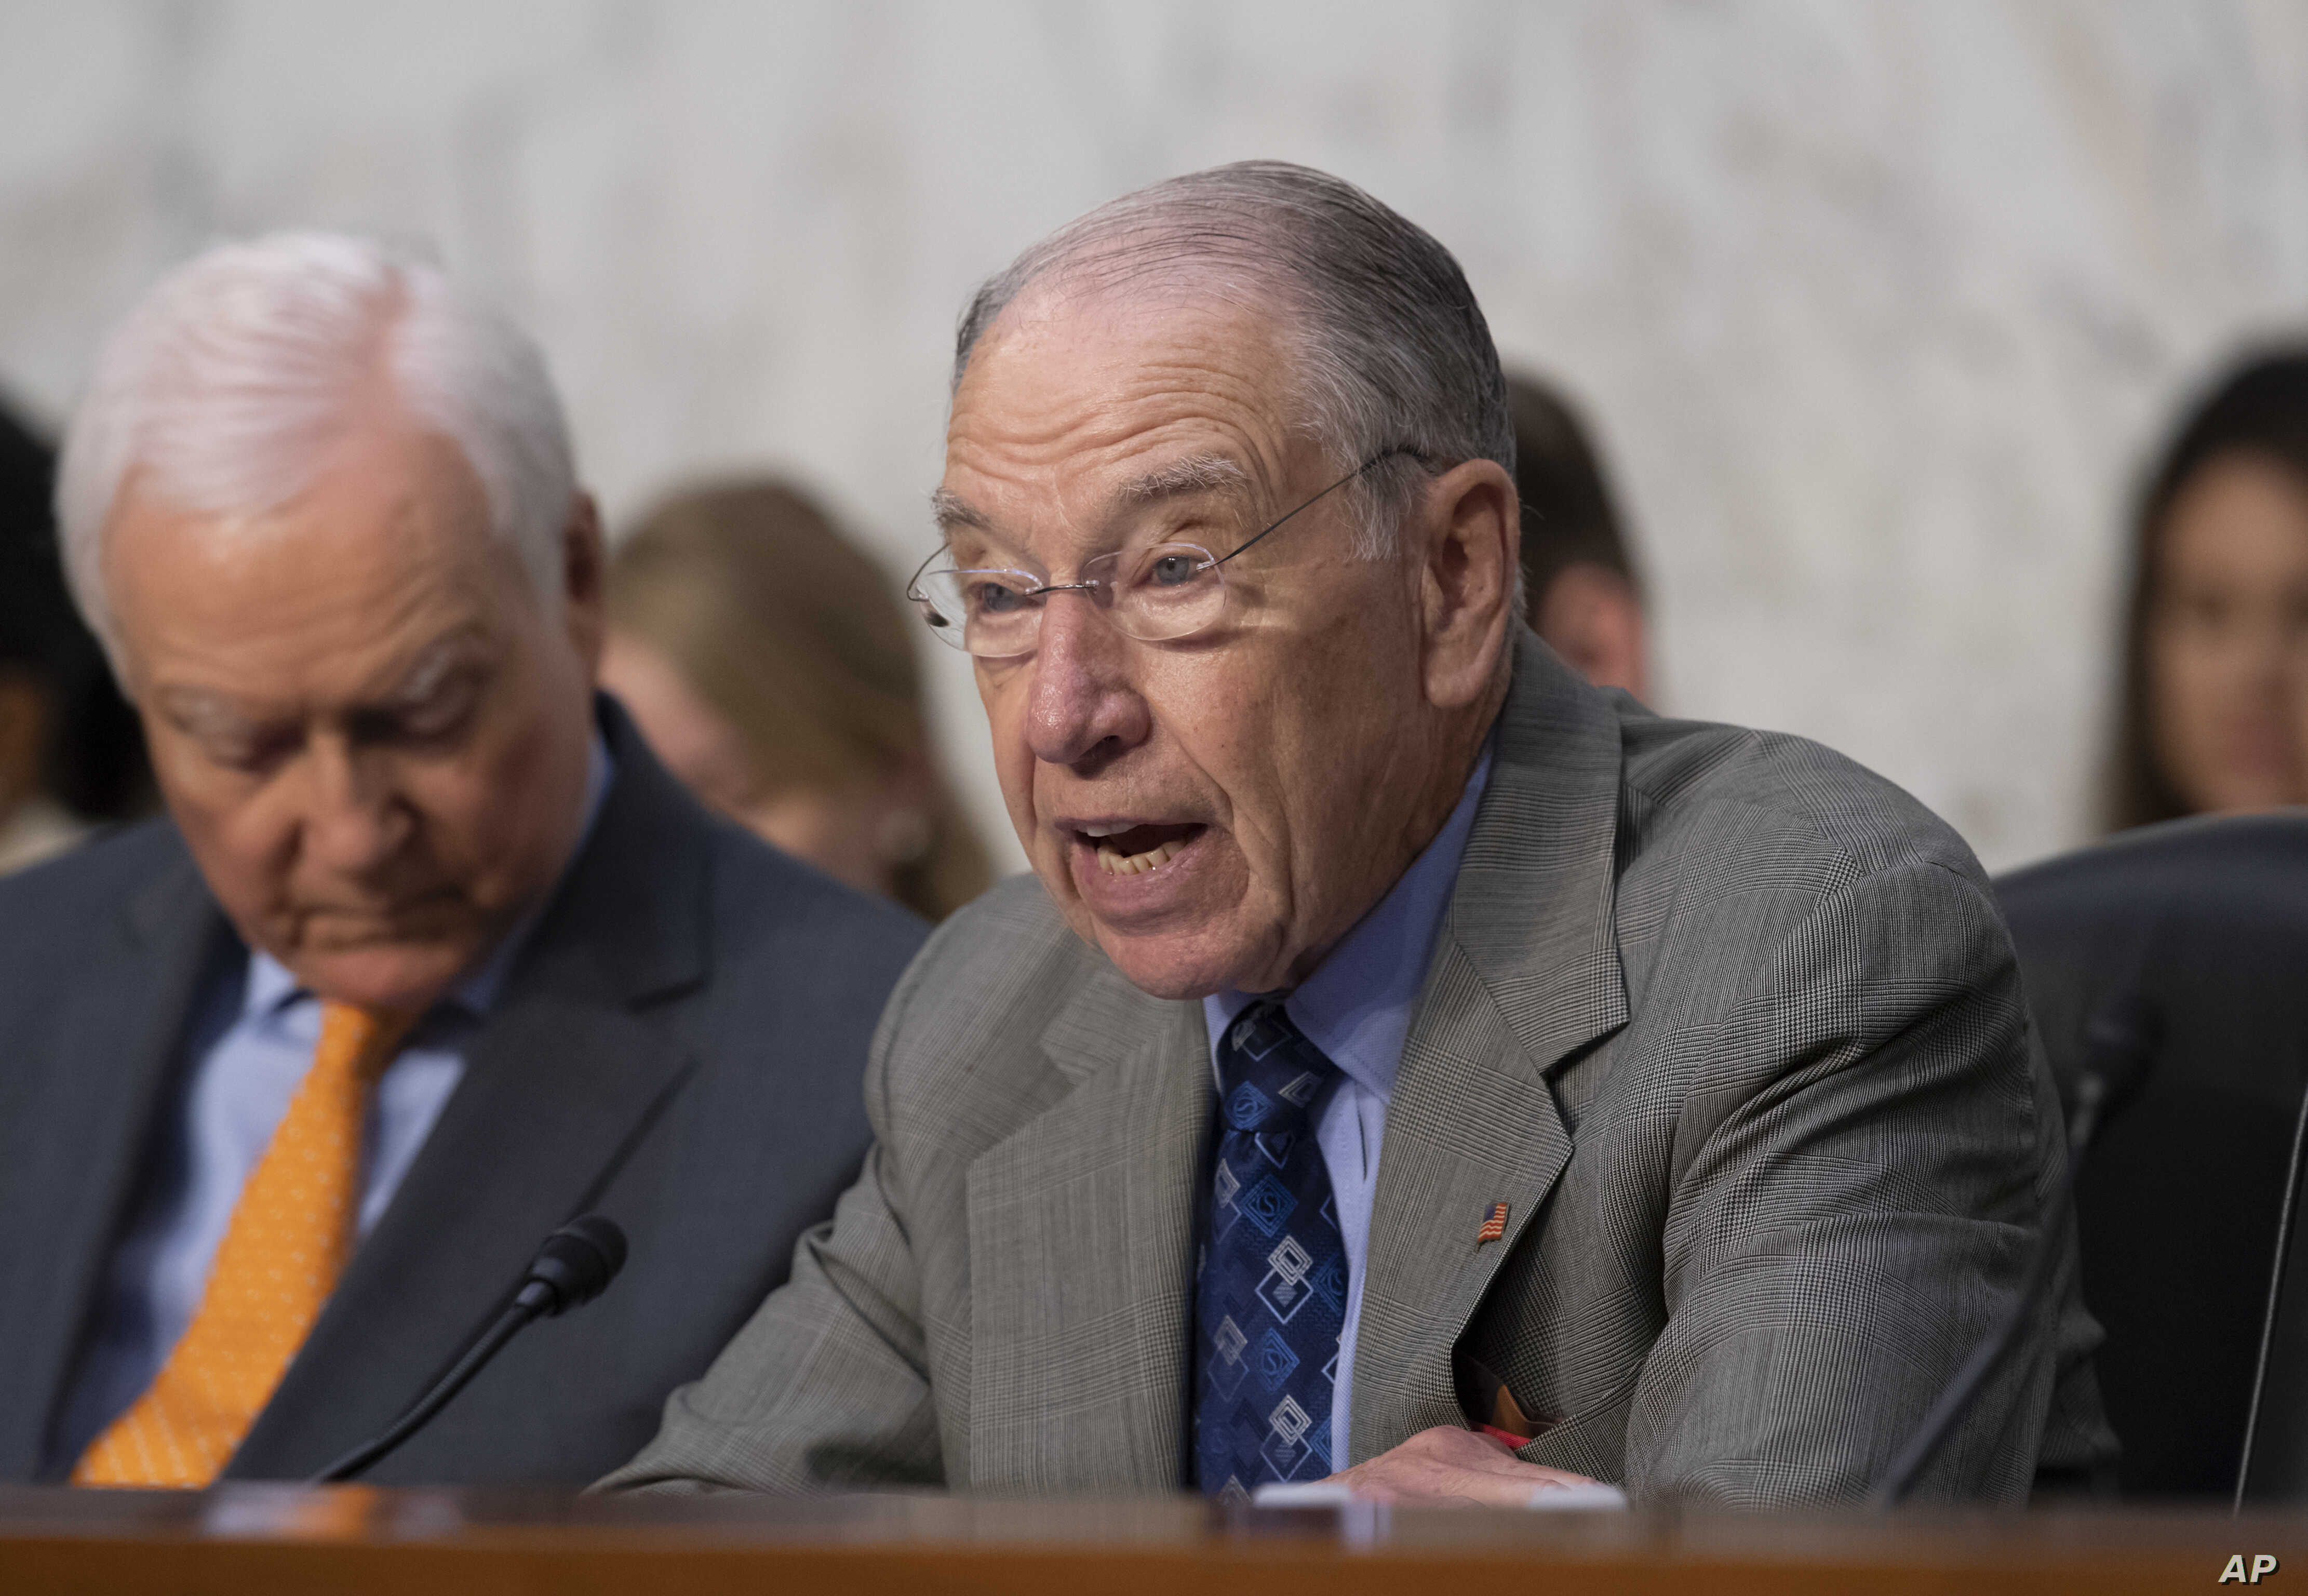 Senate Judiciary Committee Chairman Chuck Grassley, R-Iowa, joined by Sen. Orrin Hatch, R-Utah, left, opens a hearing on the Trump administration's policies on immigration enforcement and family reunification efforts, on Capitol Hill in Washington, J...